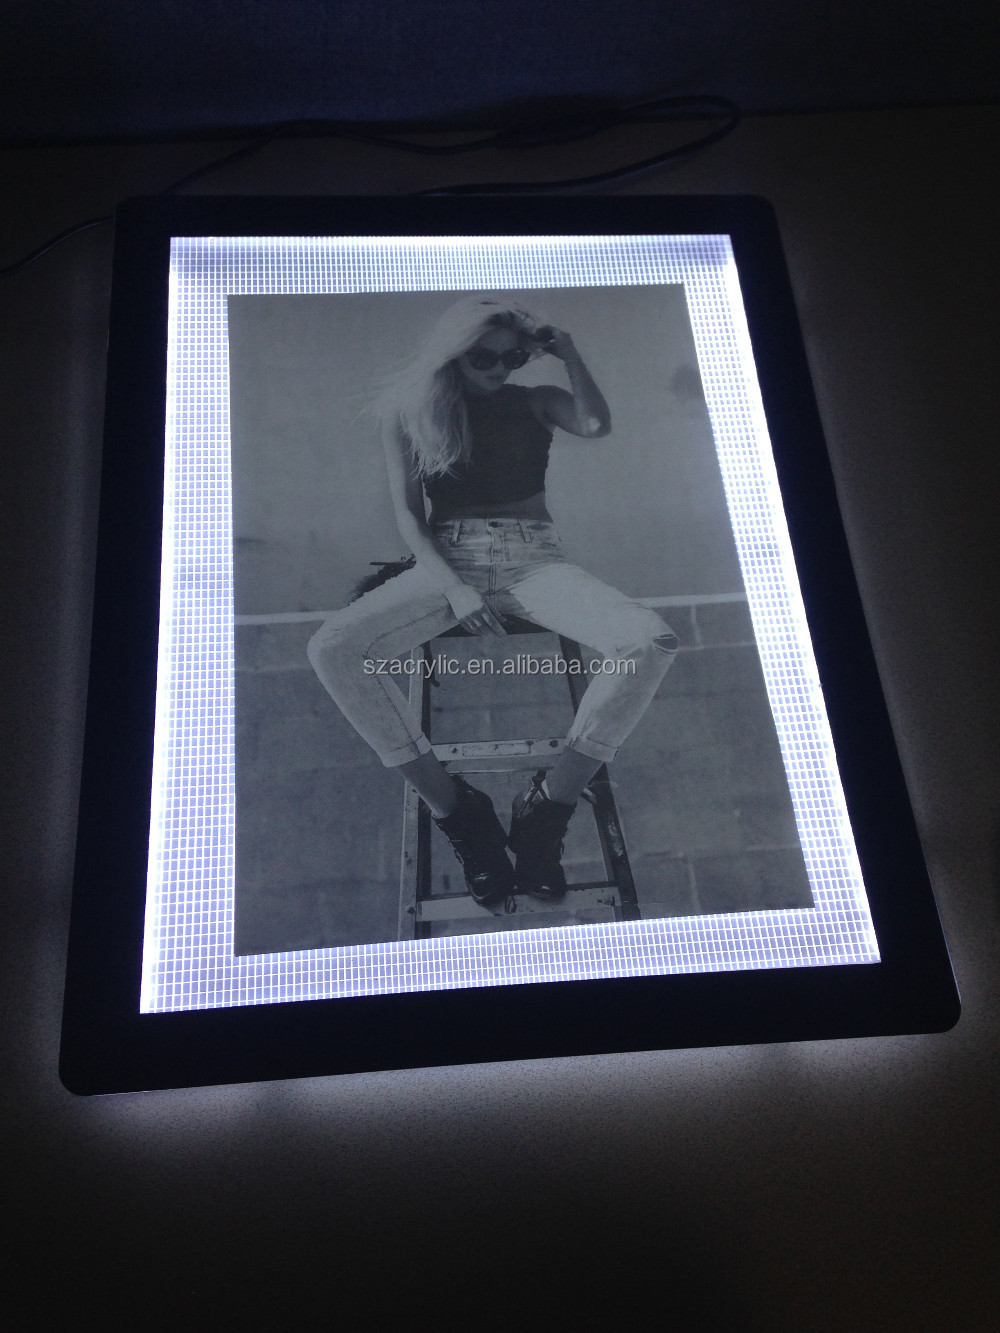 High quality modern led crystal acrylic poster frames with light